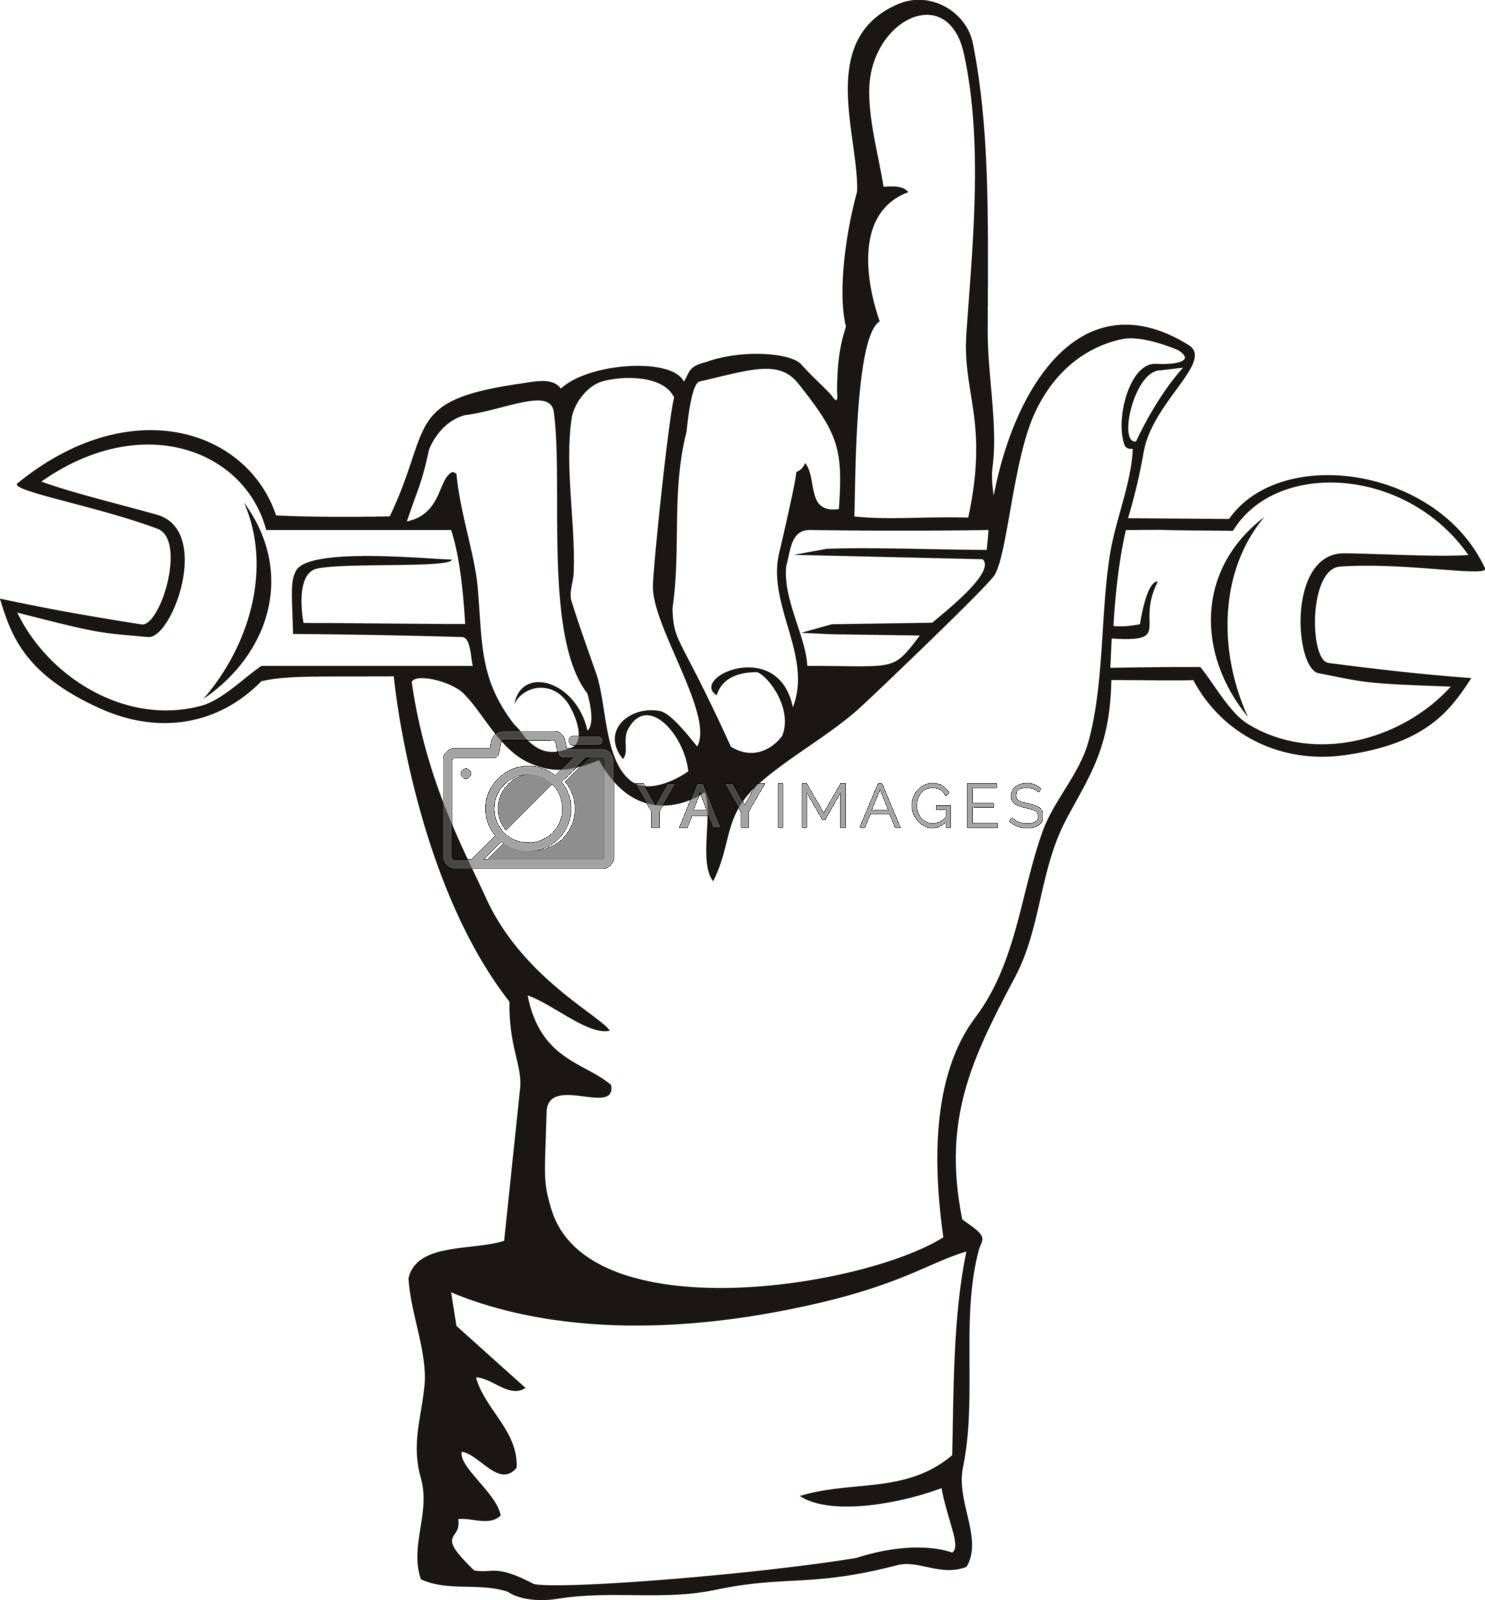 Retro style illustration of a mechanic hand holding a spanner or wrench tool with index finger or forefinger pointing up on isolated background done in black and white.